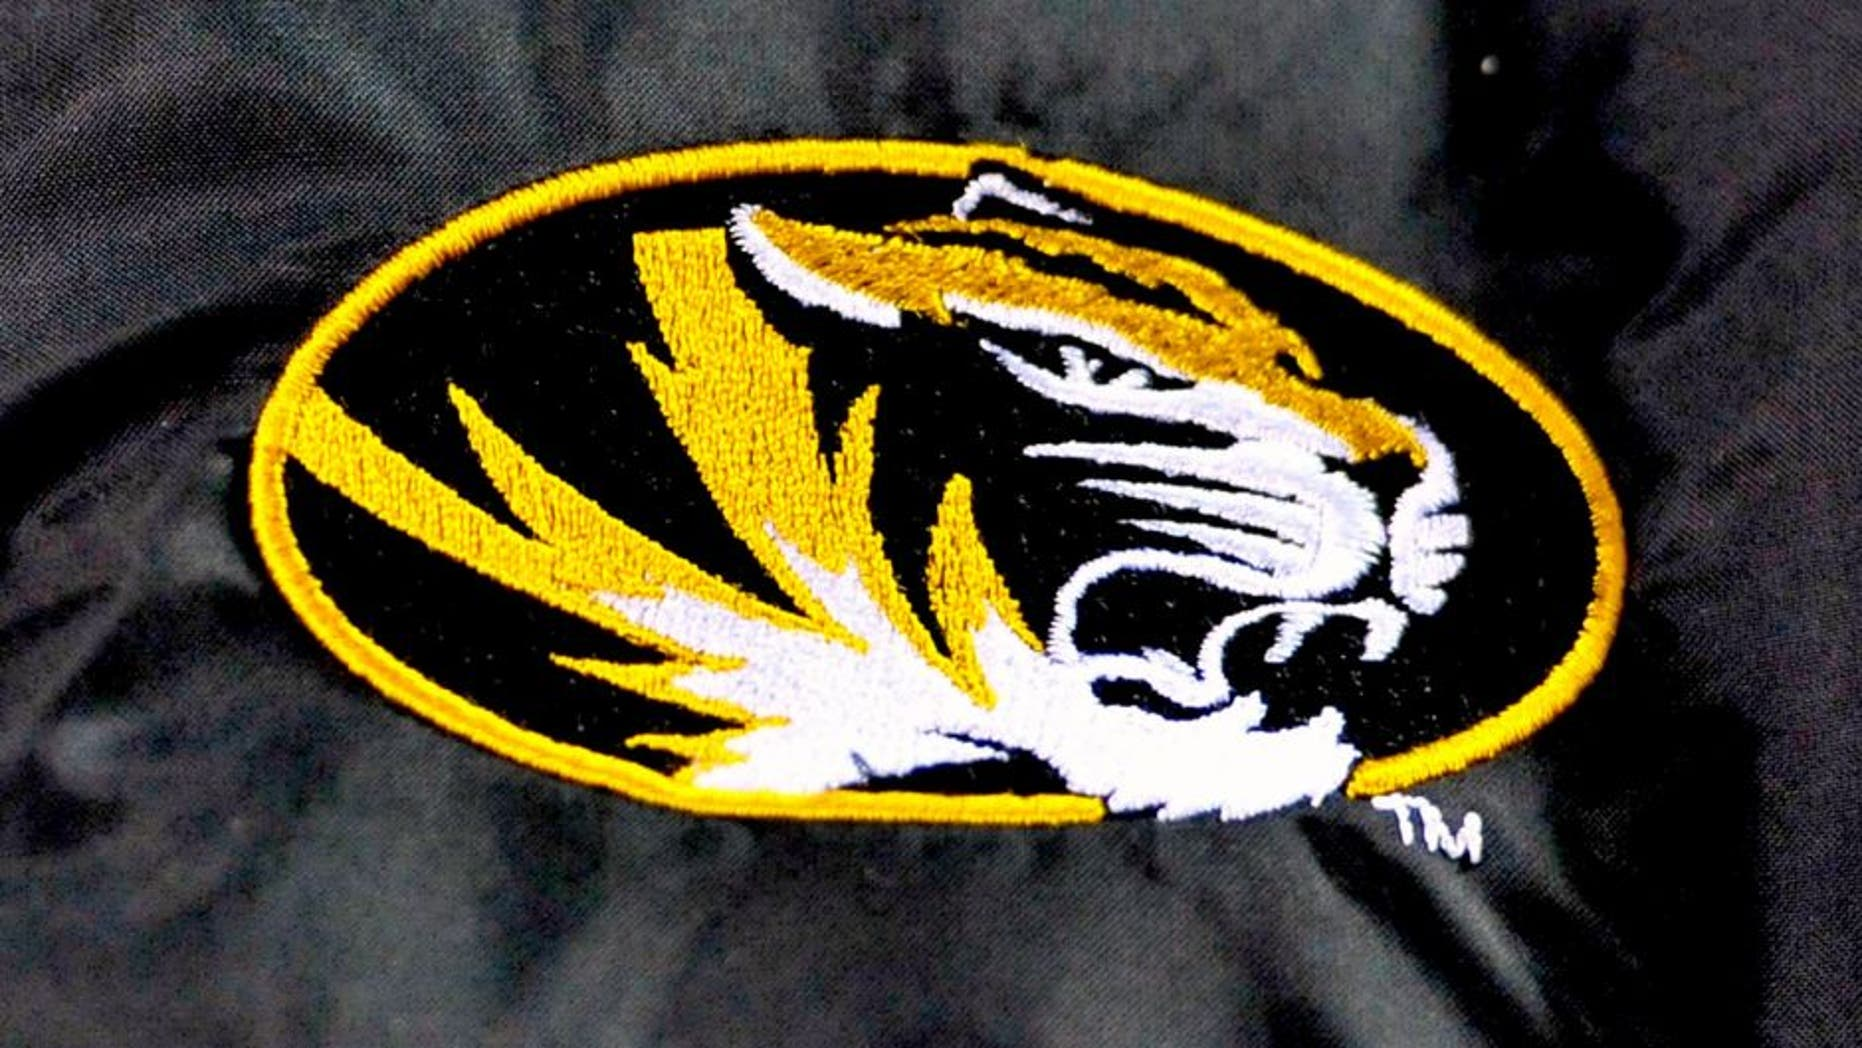 Nov 22, 2014; Knoxville, TN, USA; Missouri Tigers logo during the second half against the Tennessee Volunteers at Neyland Stadium. Missouri won 29-21. Mandatory Credit: Jim Brown-USA TODAY Sports